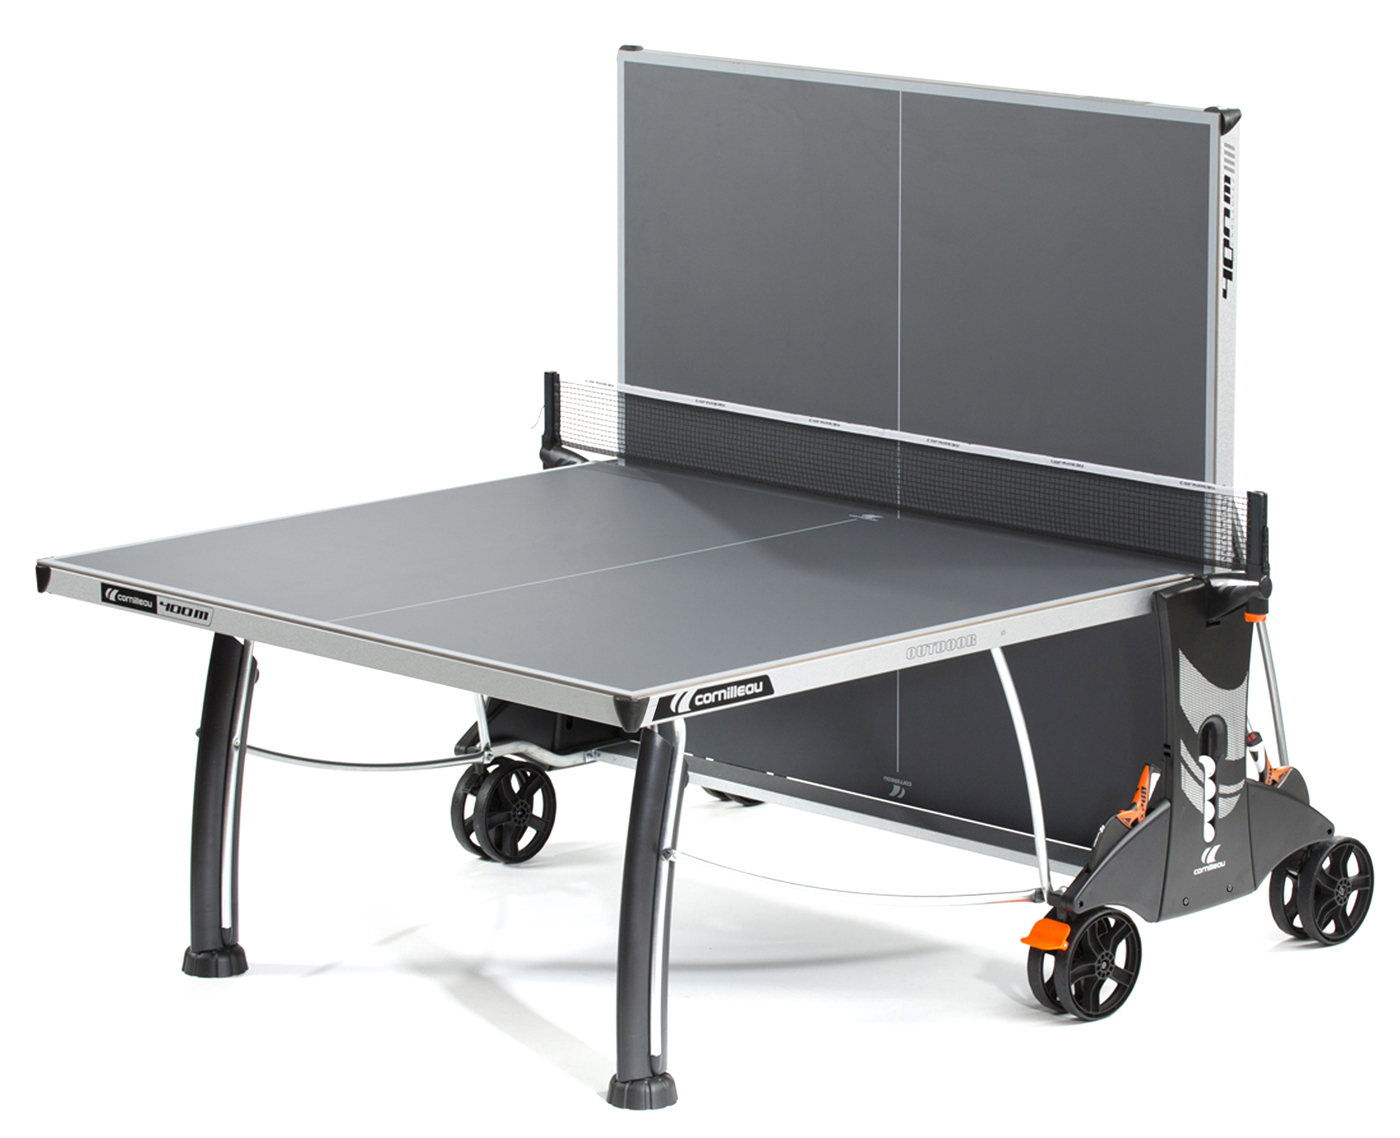 Cornilleau 400m crossover indoor outdoor gray ping pong table - Table ping pong cornilleau outdoor ...